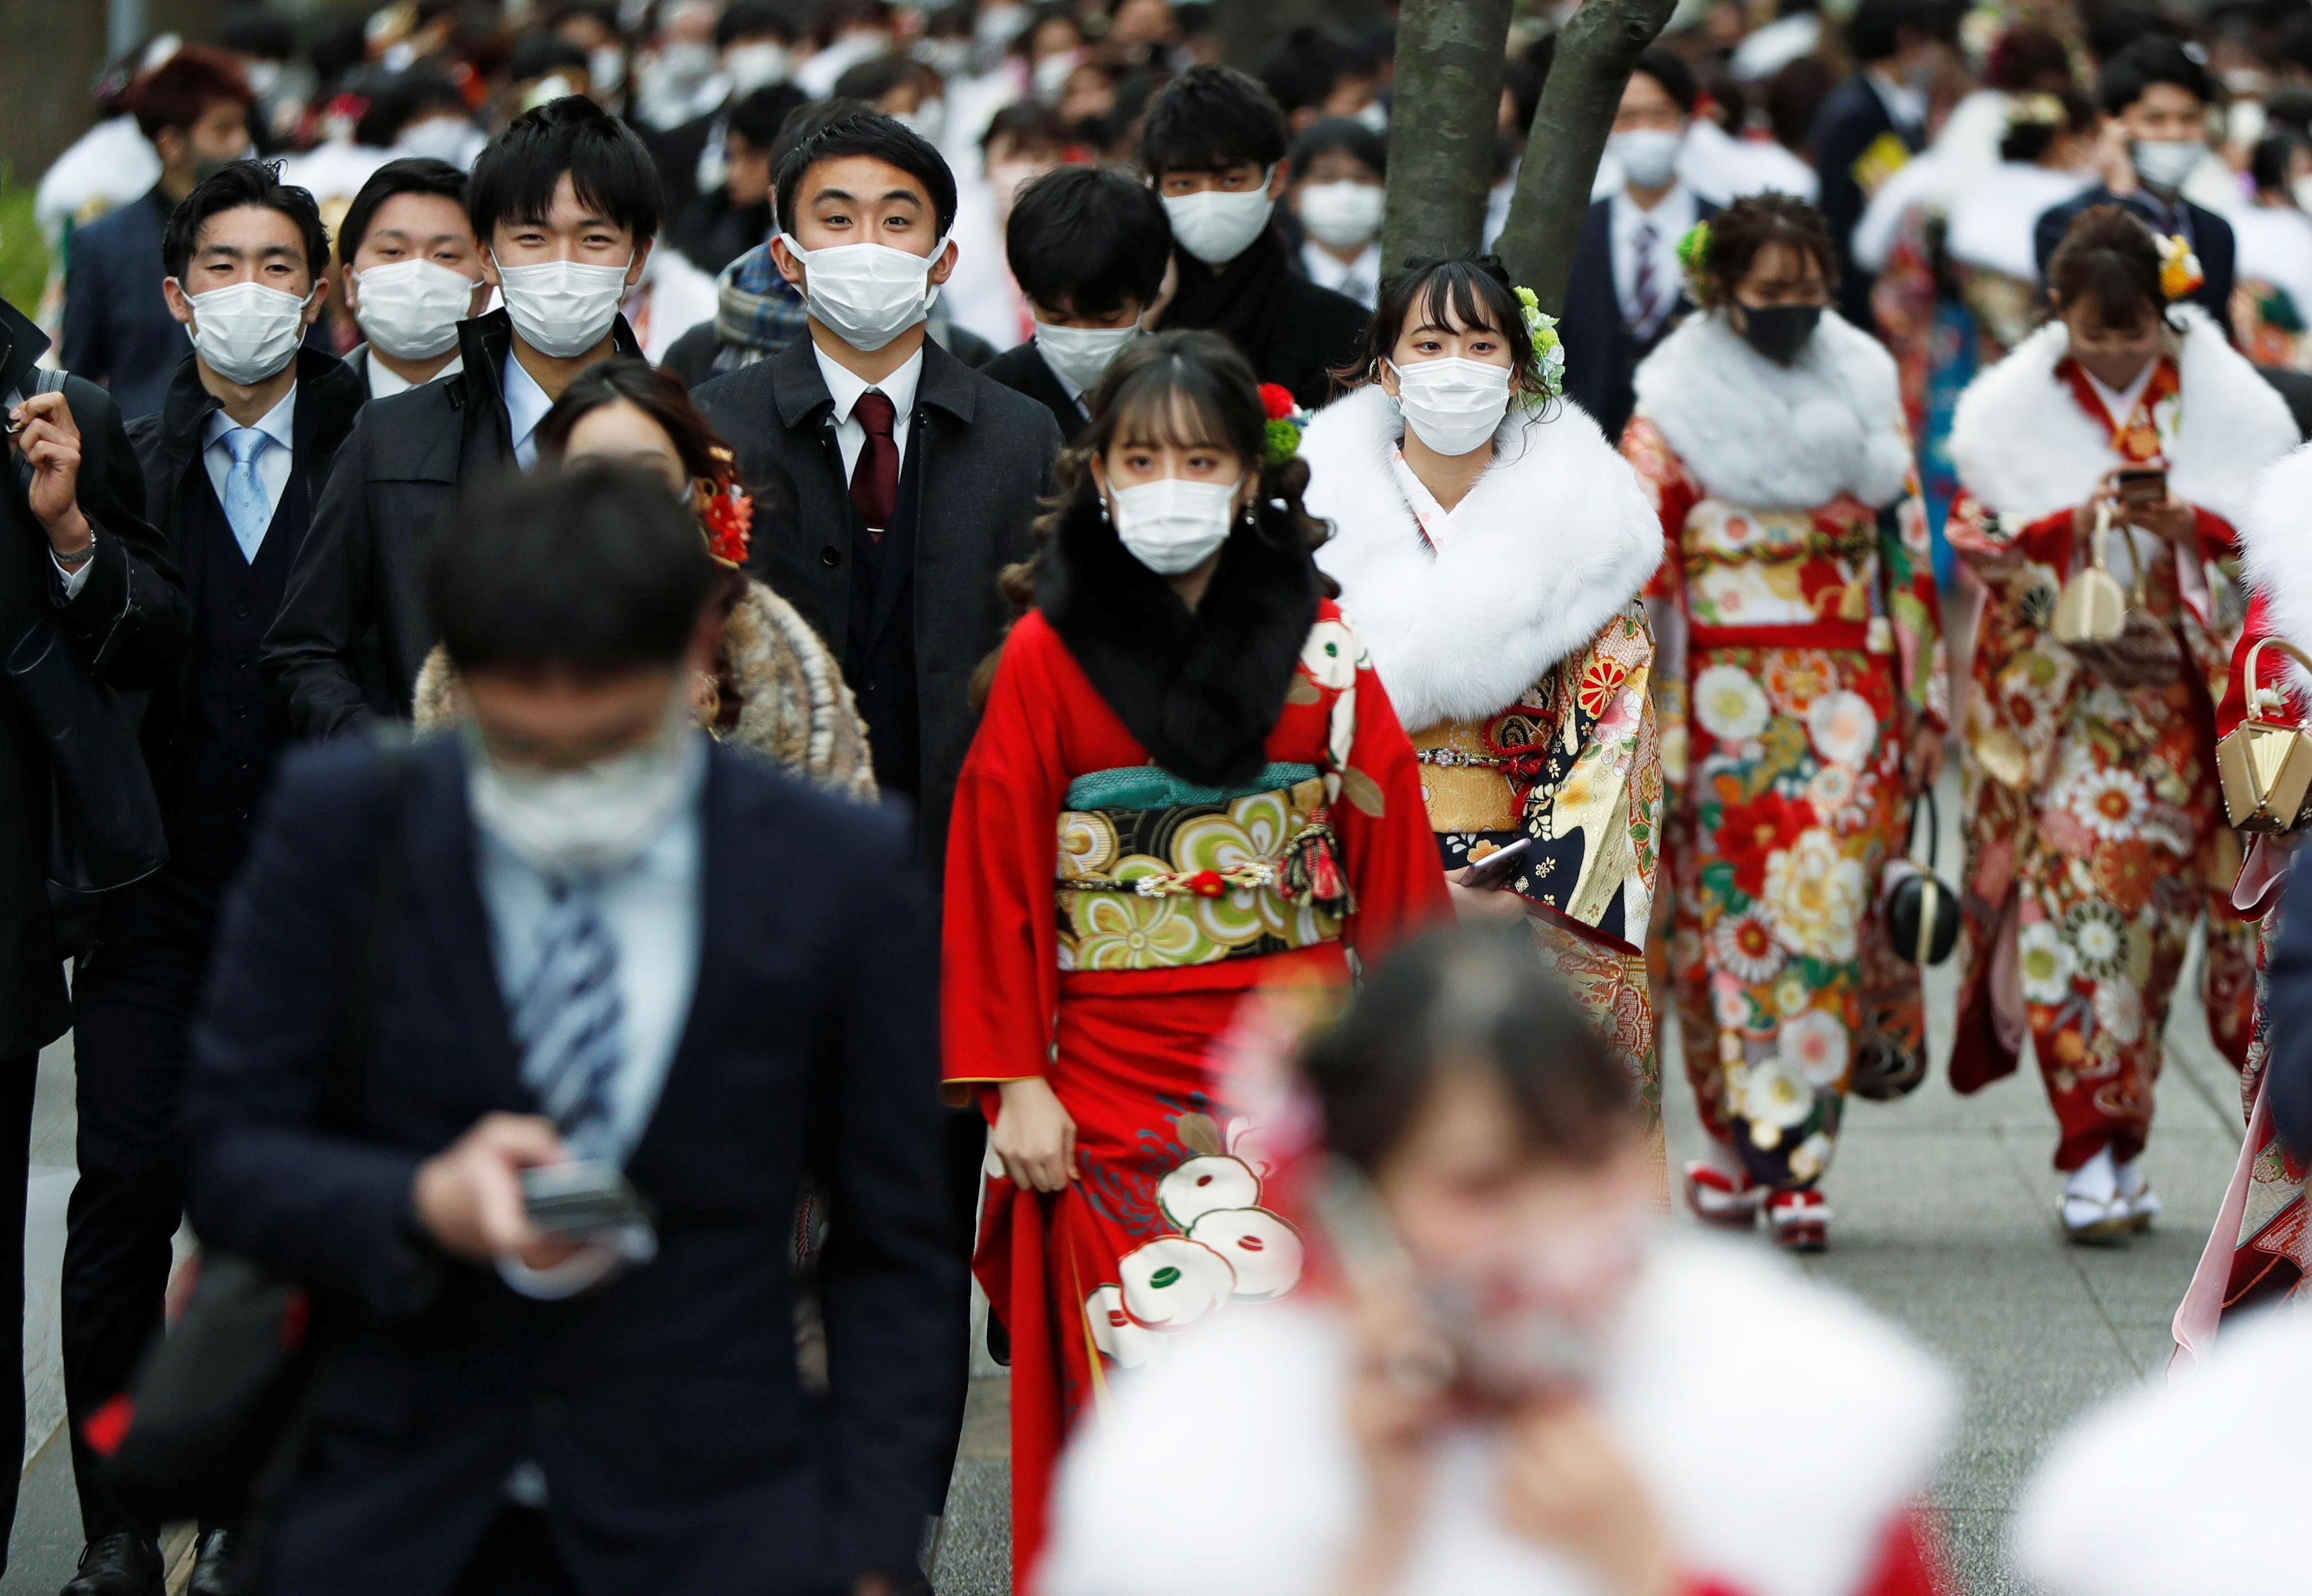 Youth including Kimono-clad women wearing protective face masks attend their Coming of Age Day celebration ceremony at Yokohama Arena after the government declared the second state of emergency for the capital and some prefectures, amid the coronavirus disease (COVID-19) outbreak, in Yokohama, Japan January 11, 2021. REUTERS/Issei Kato - RC2L5L9X2KNT